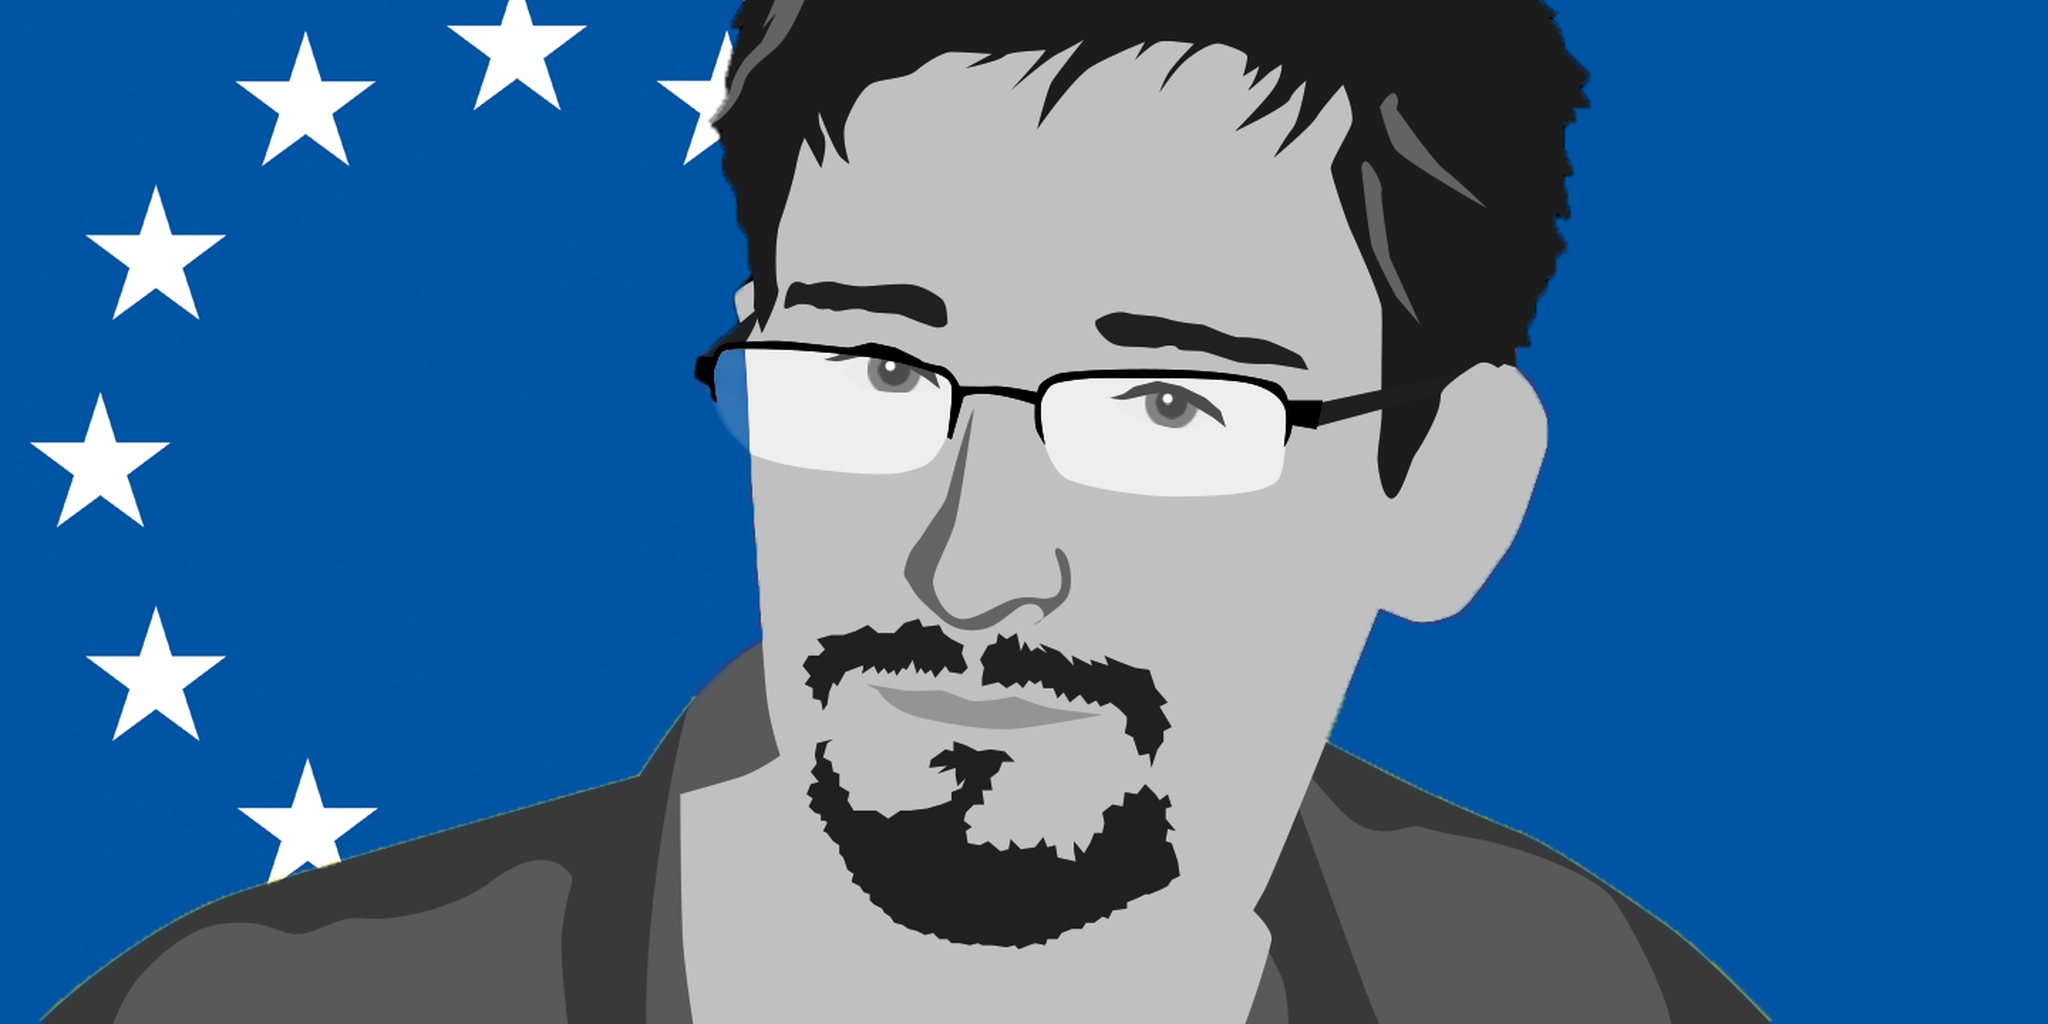 snowden_union_main.png (1440×720)